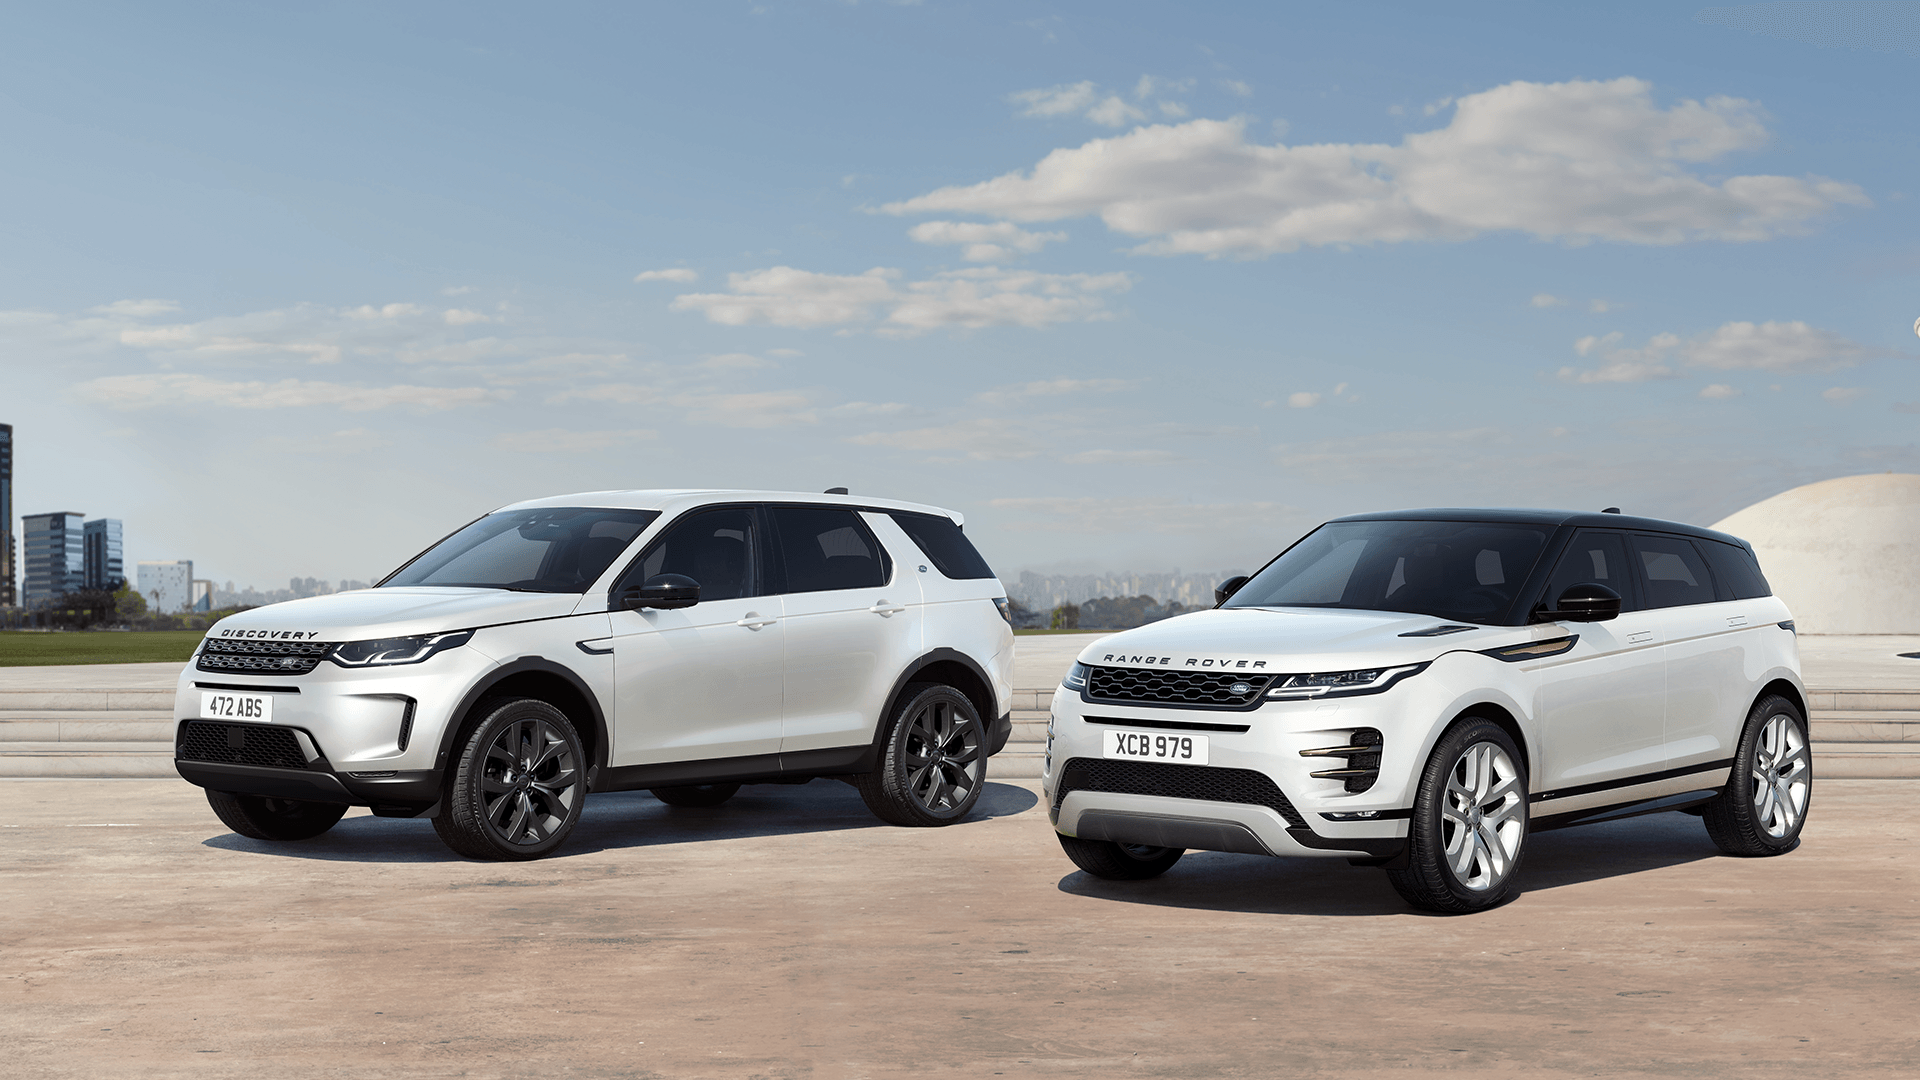 LAND ROVER BEGINS DELIVERY OF BS-VI PETROL DERIVATIVES OF NEW RANGE ROVER EVOQUE AND NEW DISCOVERY SPORT